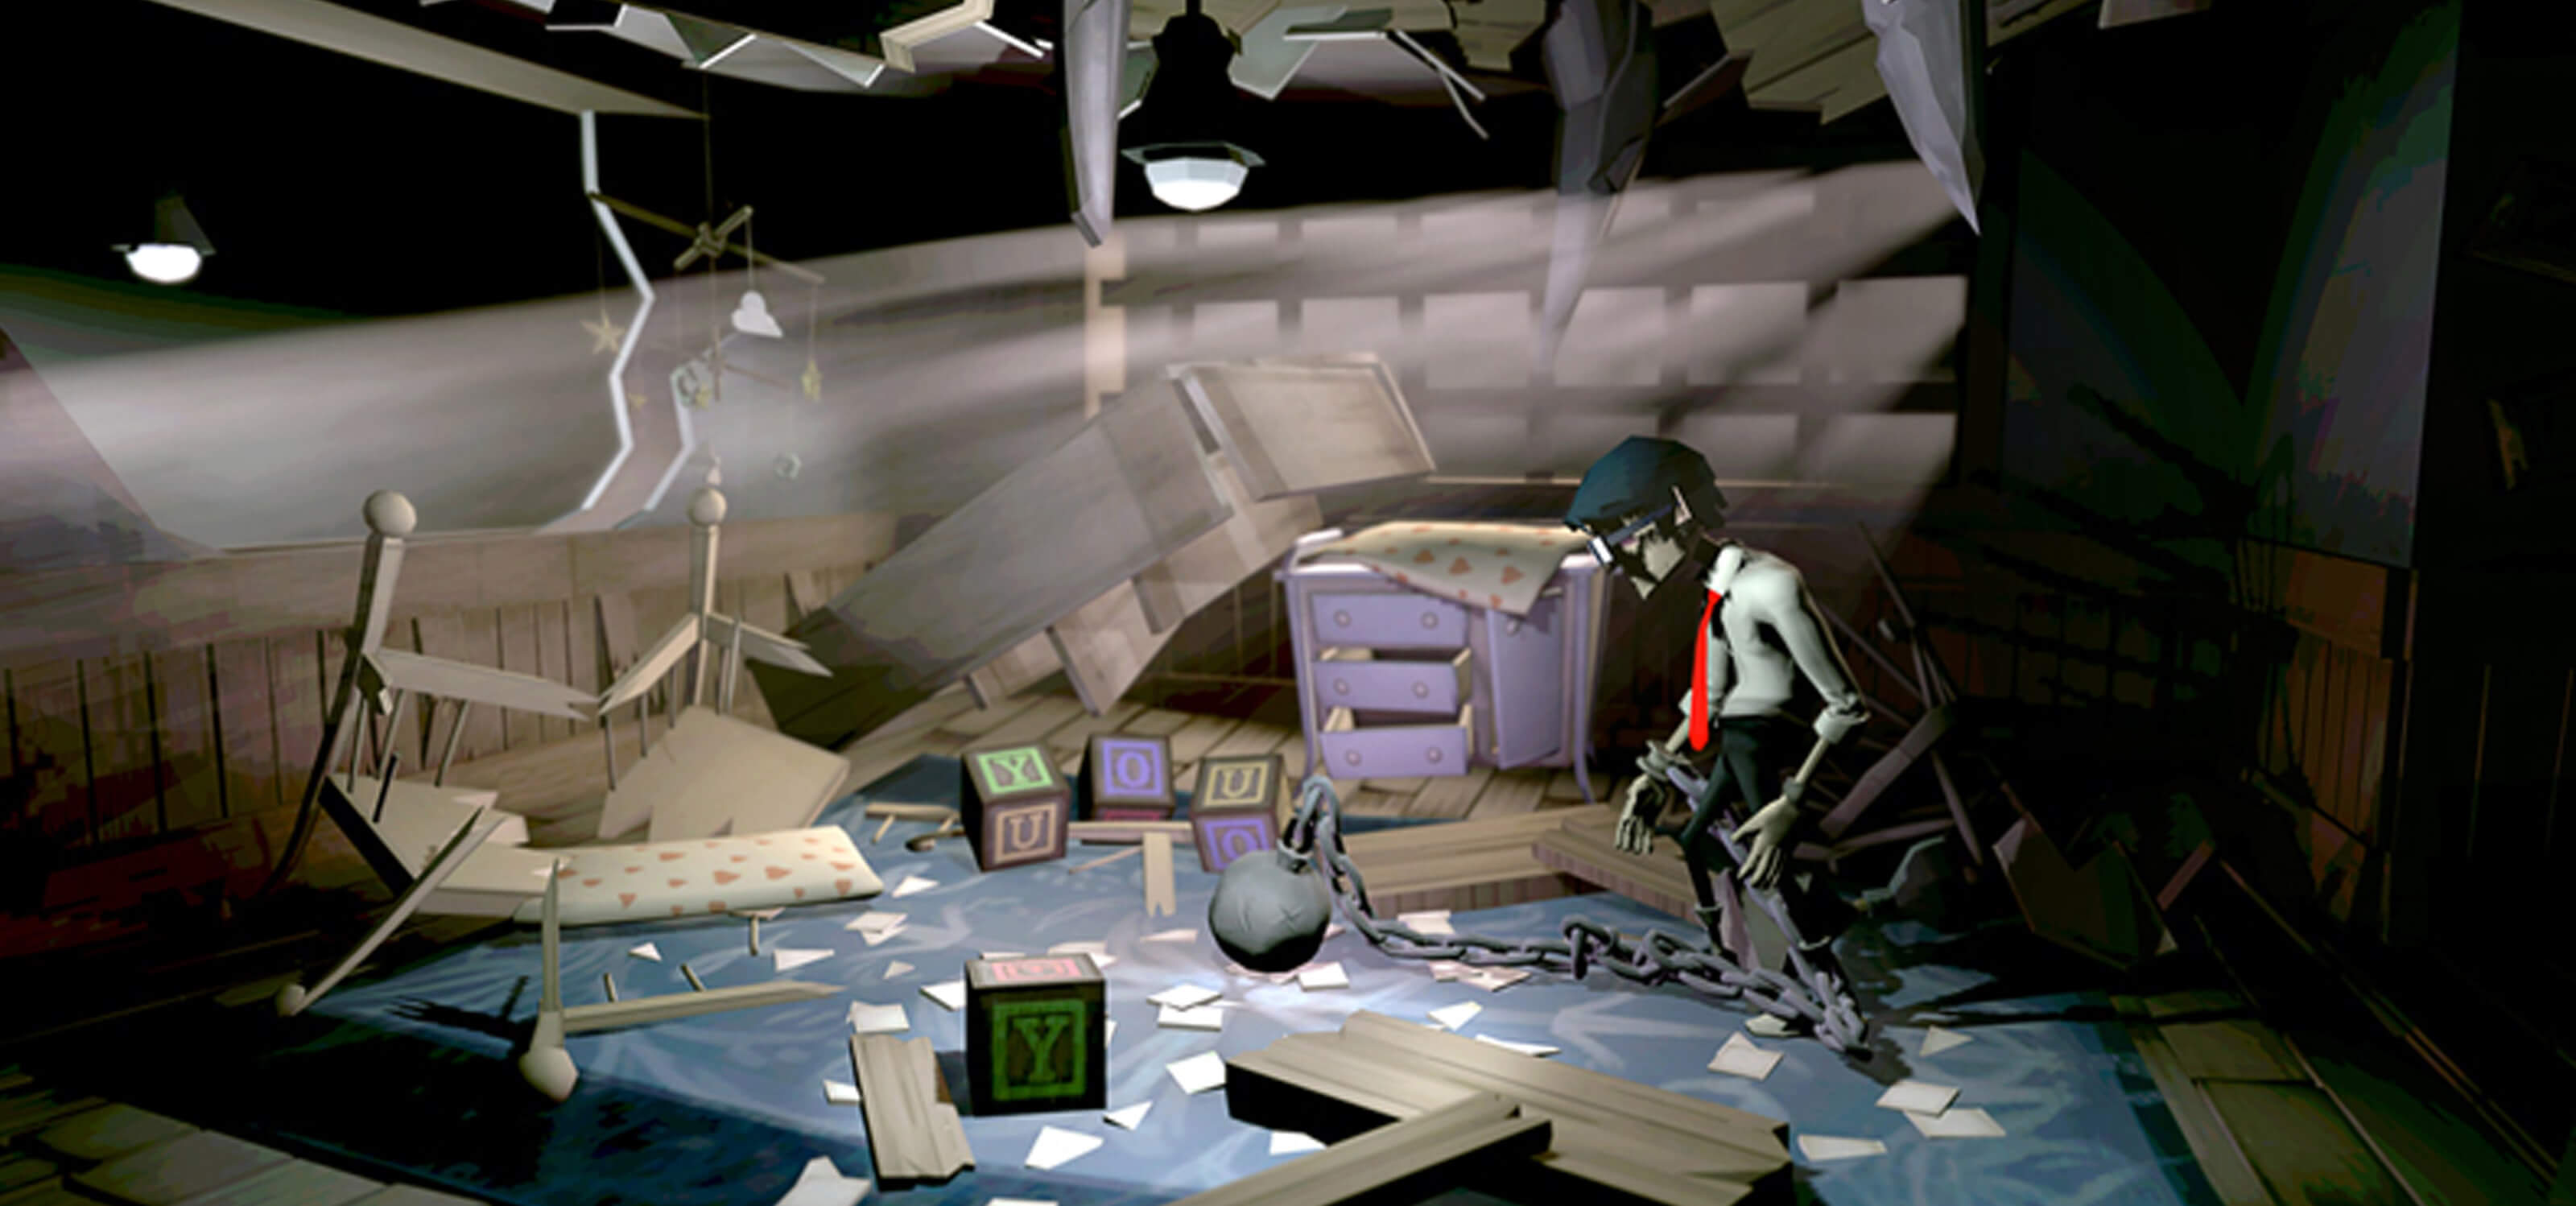 Screenshot from DigiPen student game Chained featuring the main character looking around a destroyed nursery